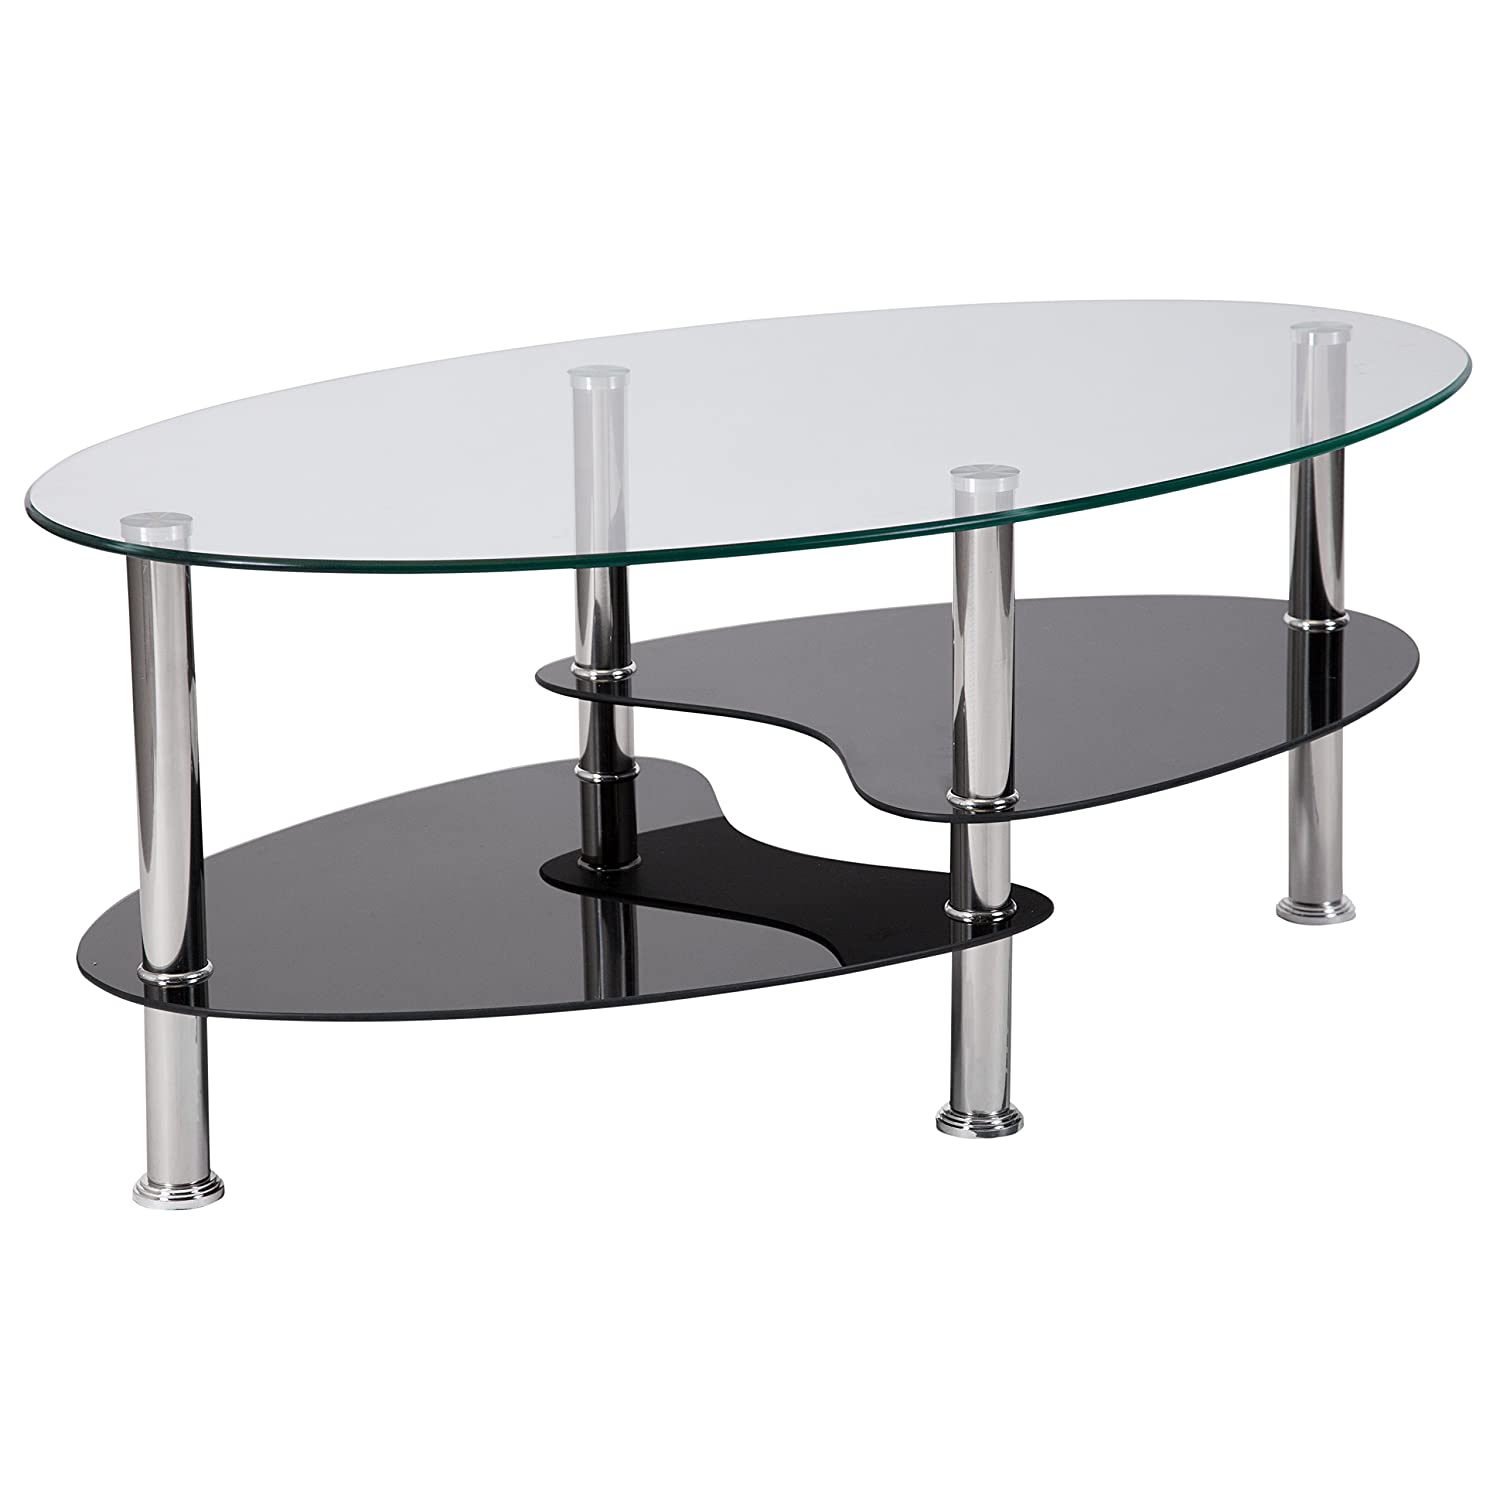 Flash Furniture Hampden Glass Coffee Table with Black Glass Shelves and Stainless Steel Legs HG-600920-GG